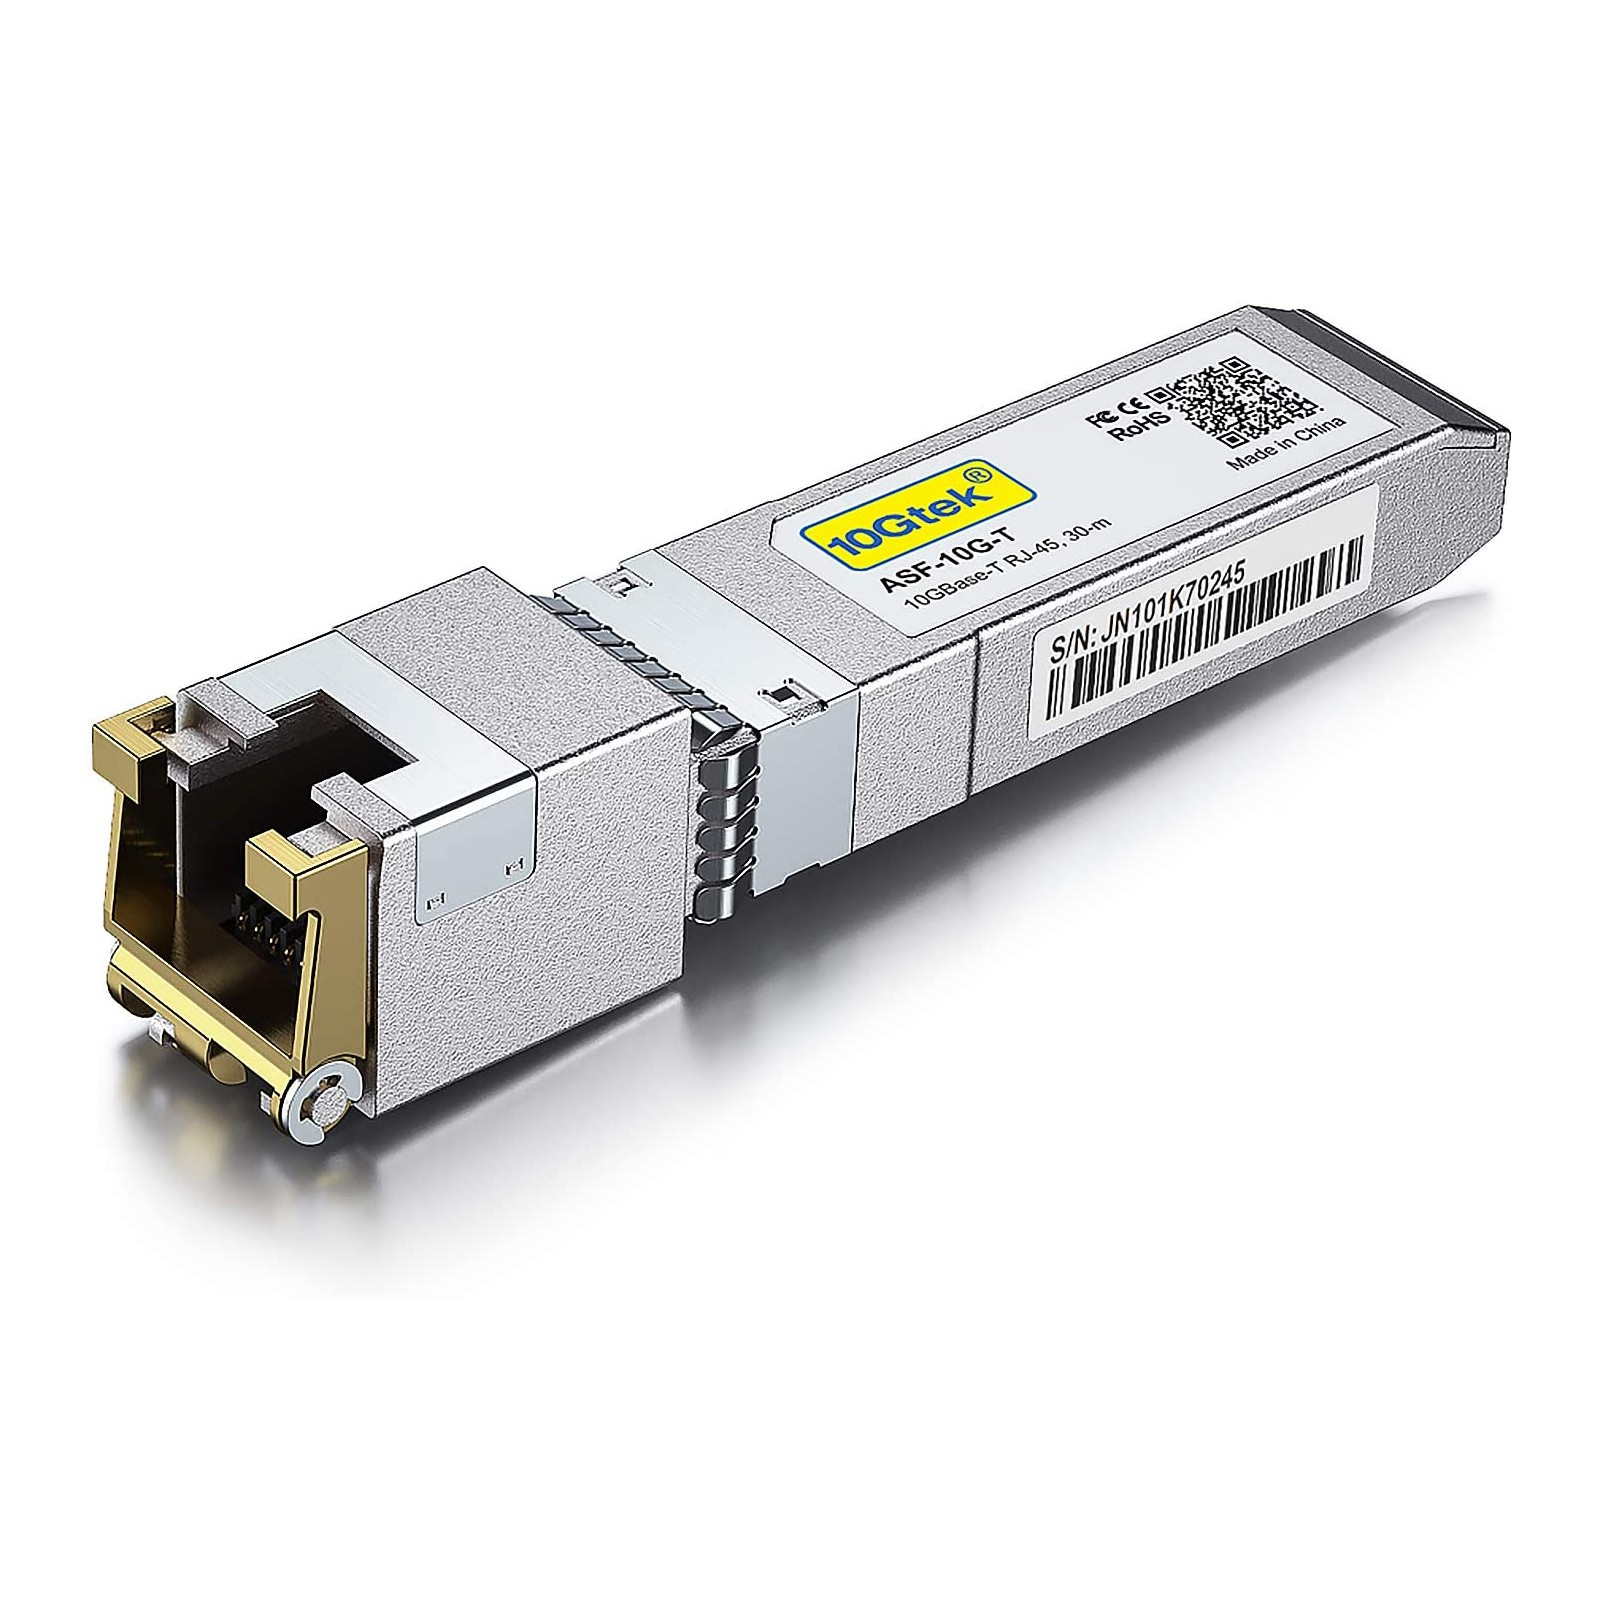 10GBase-T SFP+ Transceiver, 10G T, 10G Copper, RJ-45 SFP+ CAT.6a up to 30 meters Compatible for Edgecore/Accton *